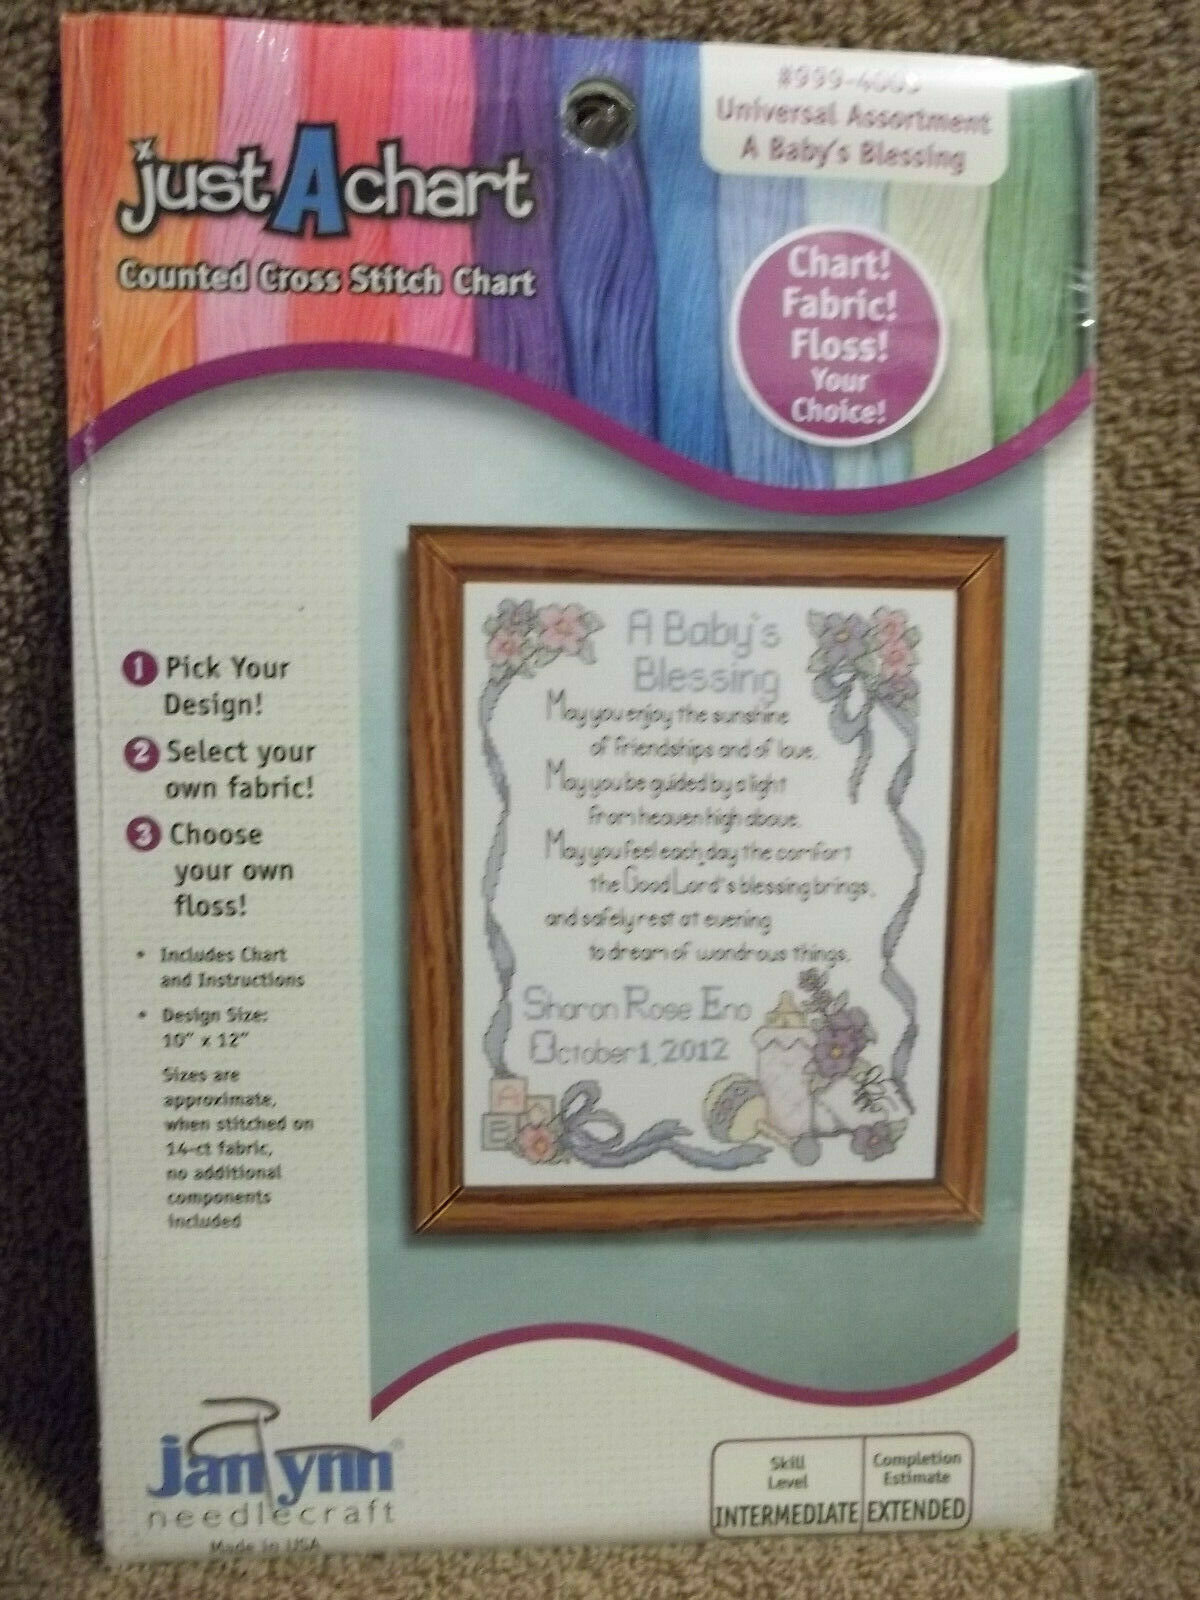 Just a Chart Counted Cross Stitch Chart - A Baby's Blessing